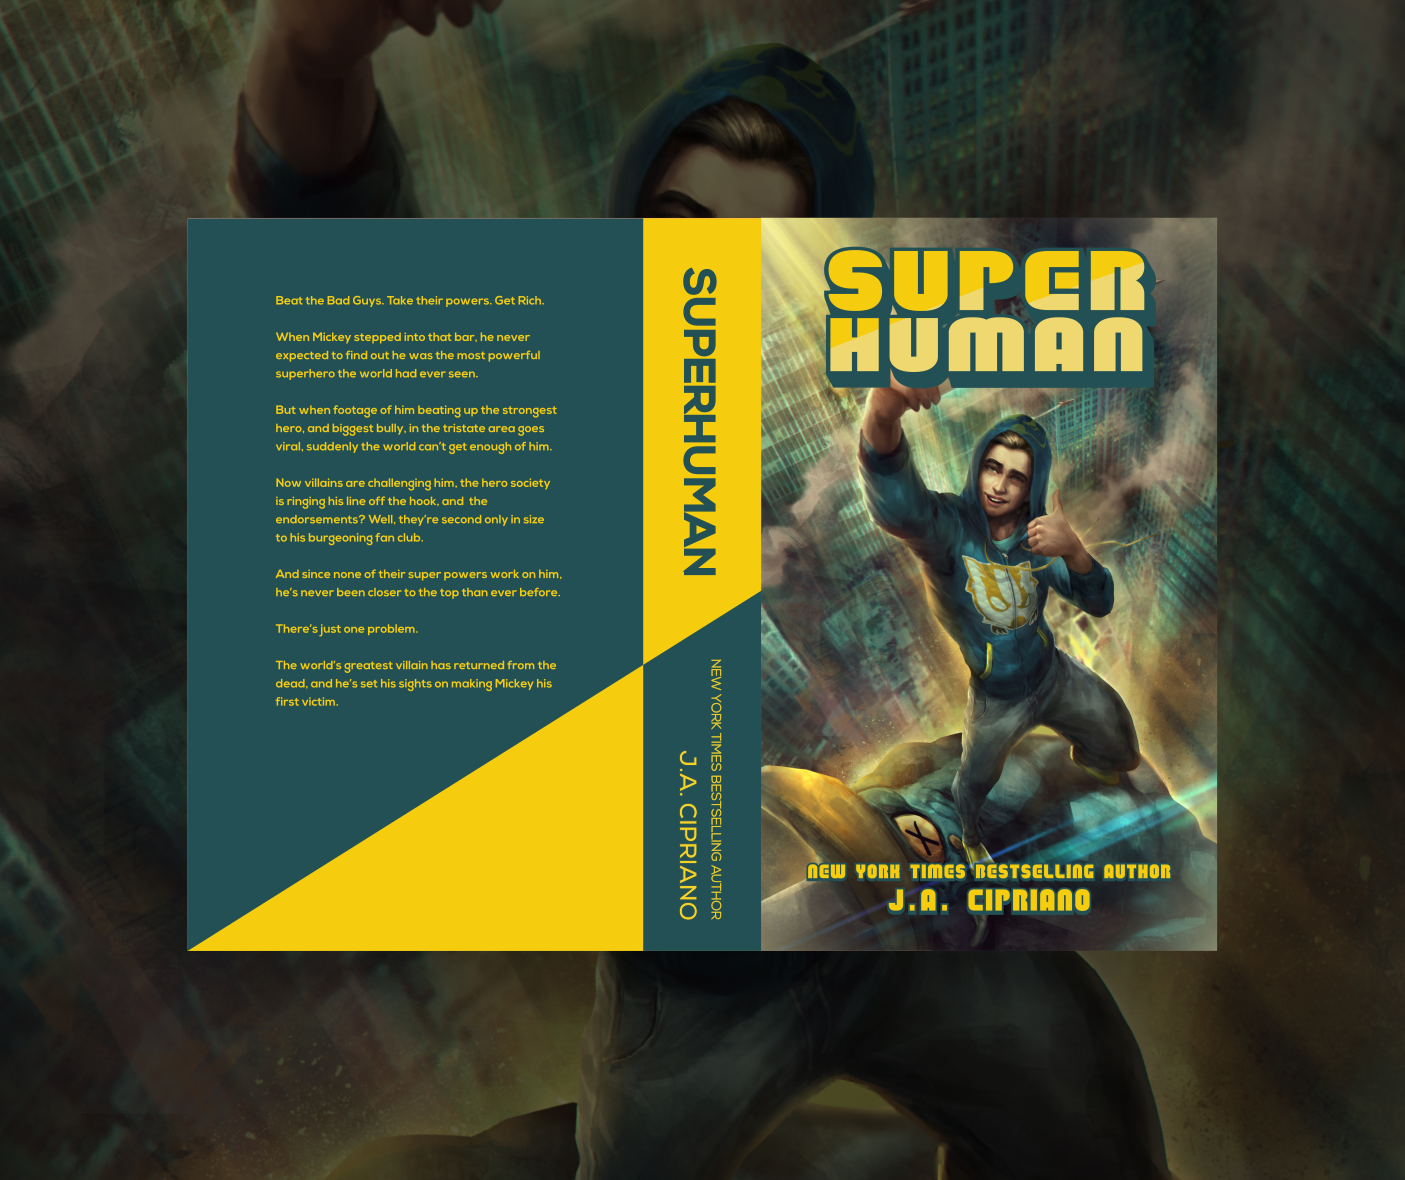 Book cover design for Superhuman. Designed by Johnery